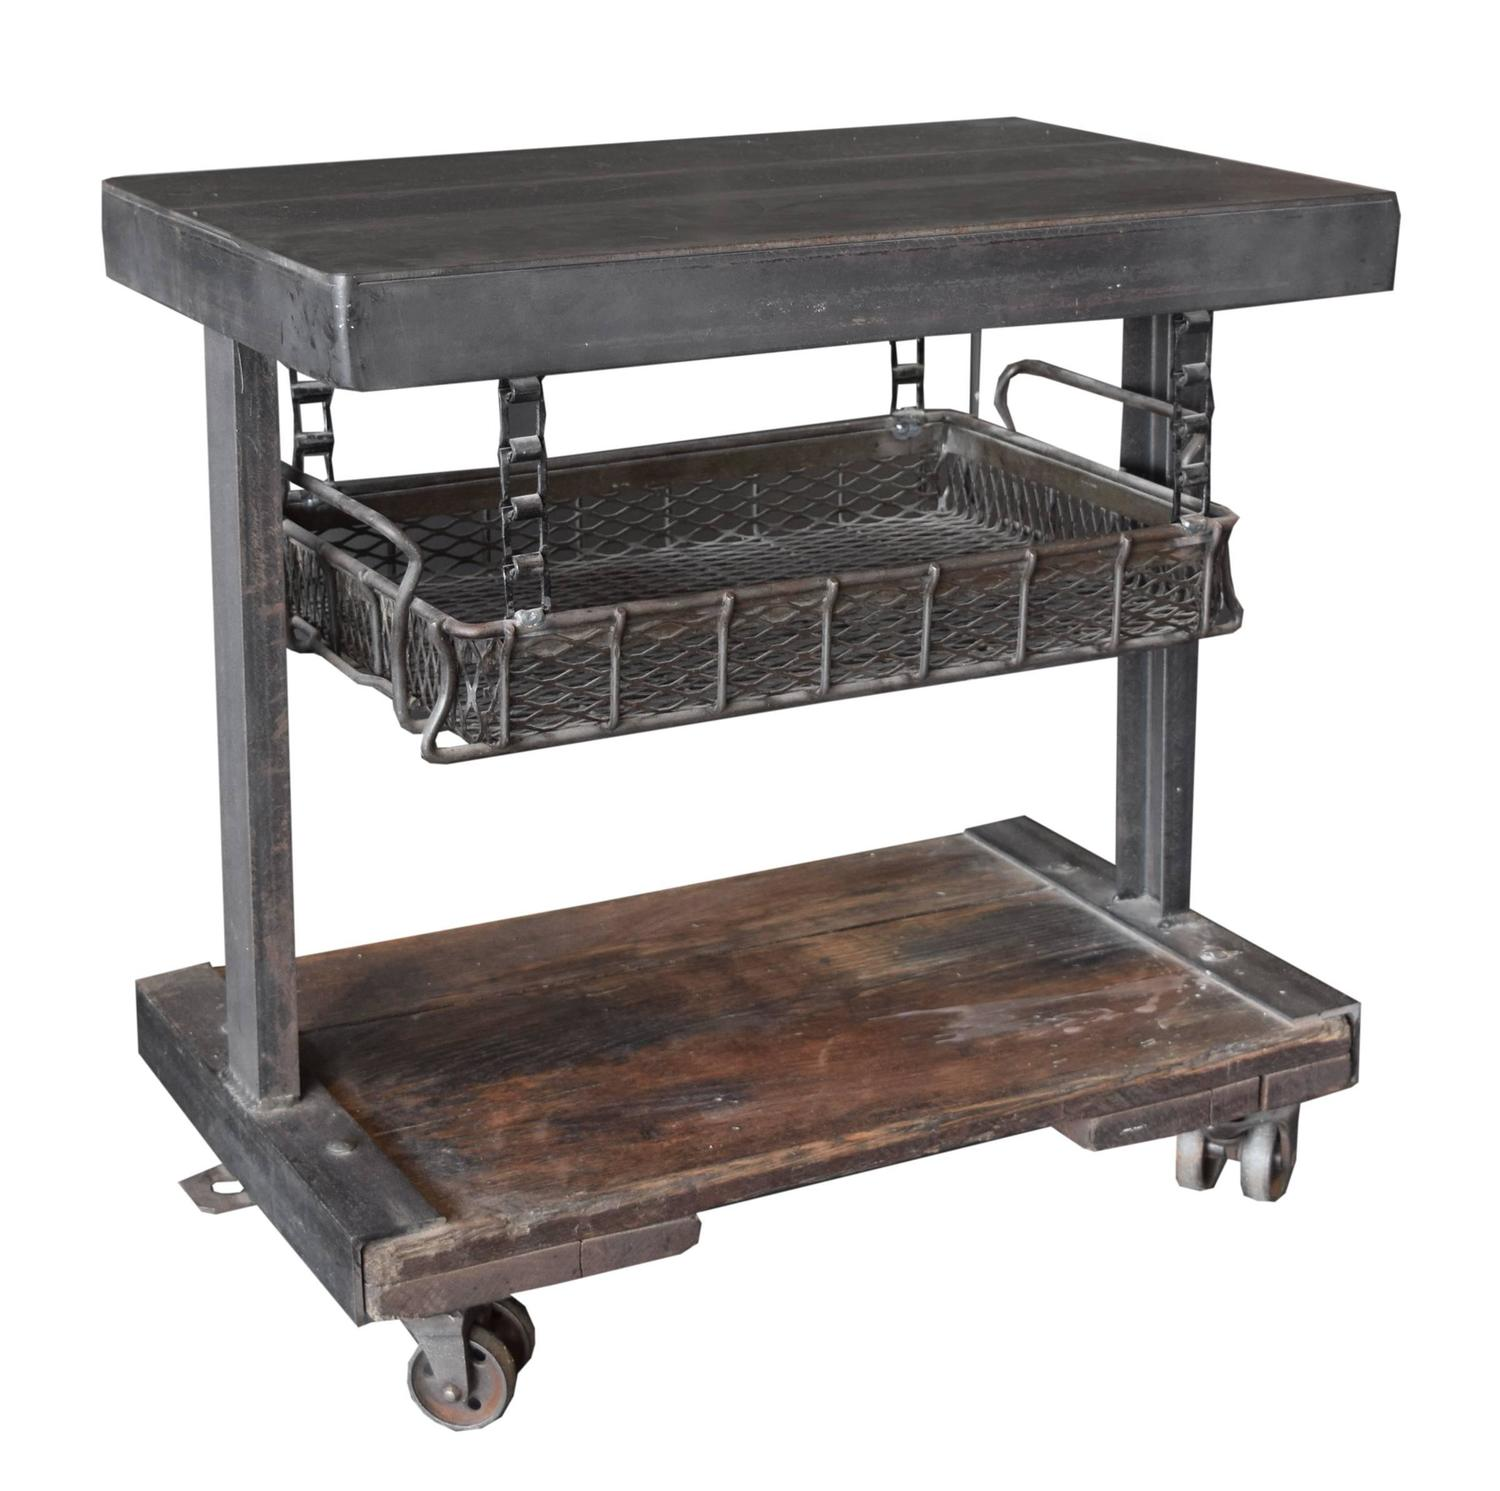 American industrial side table with tray at 1stdibs for Tray side table